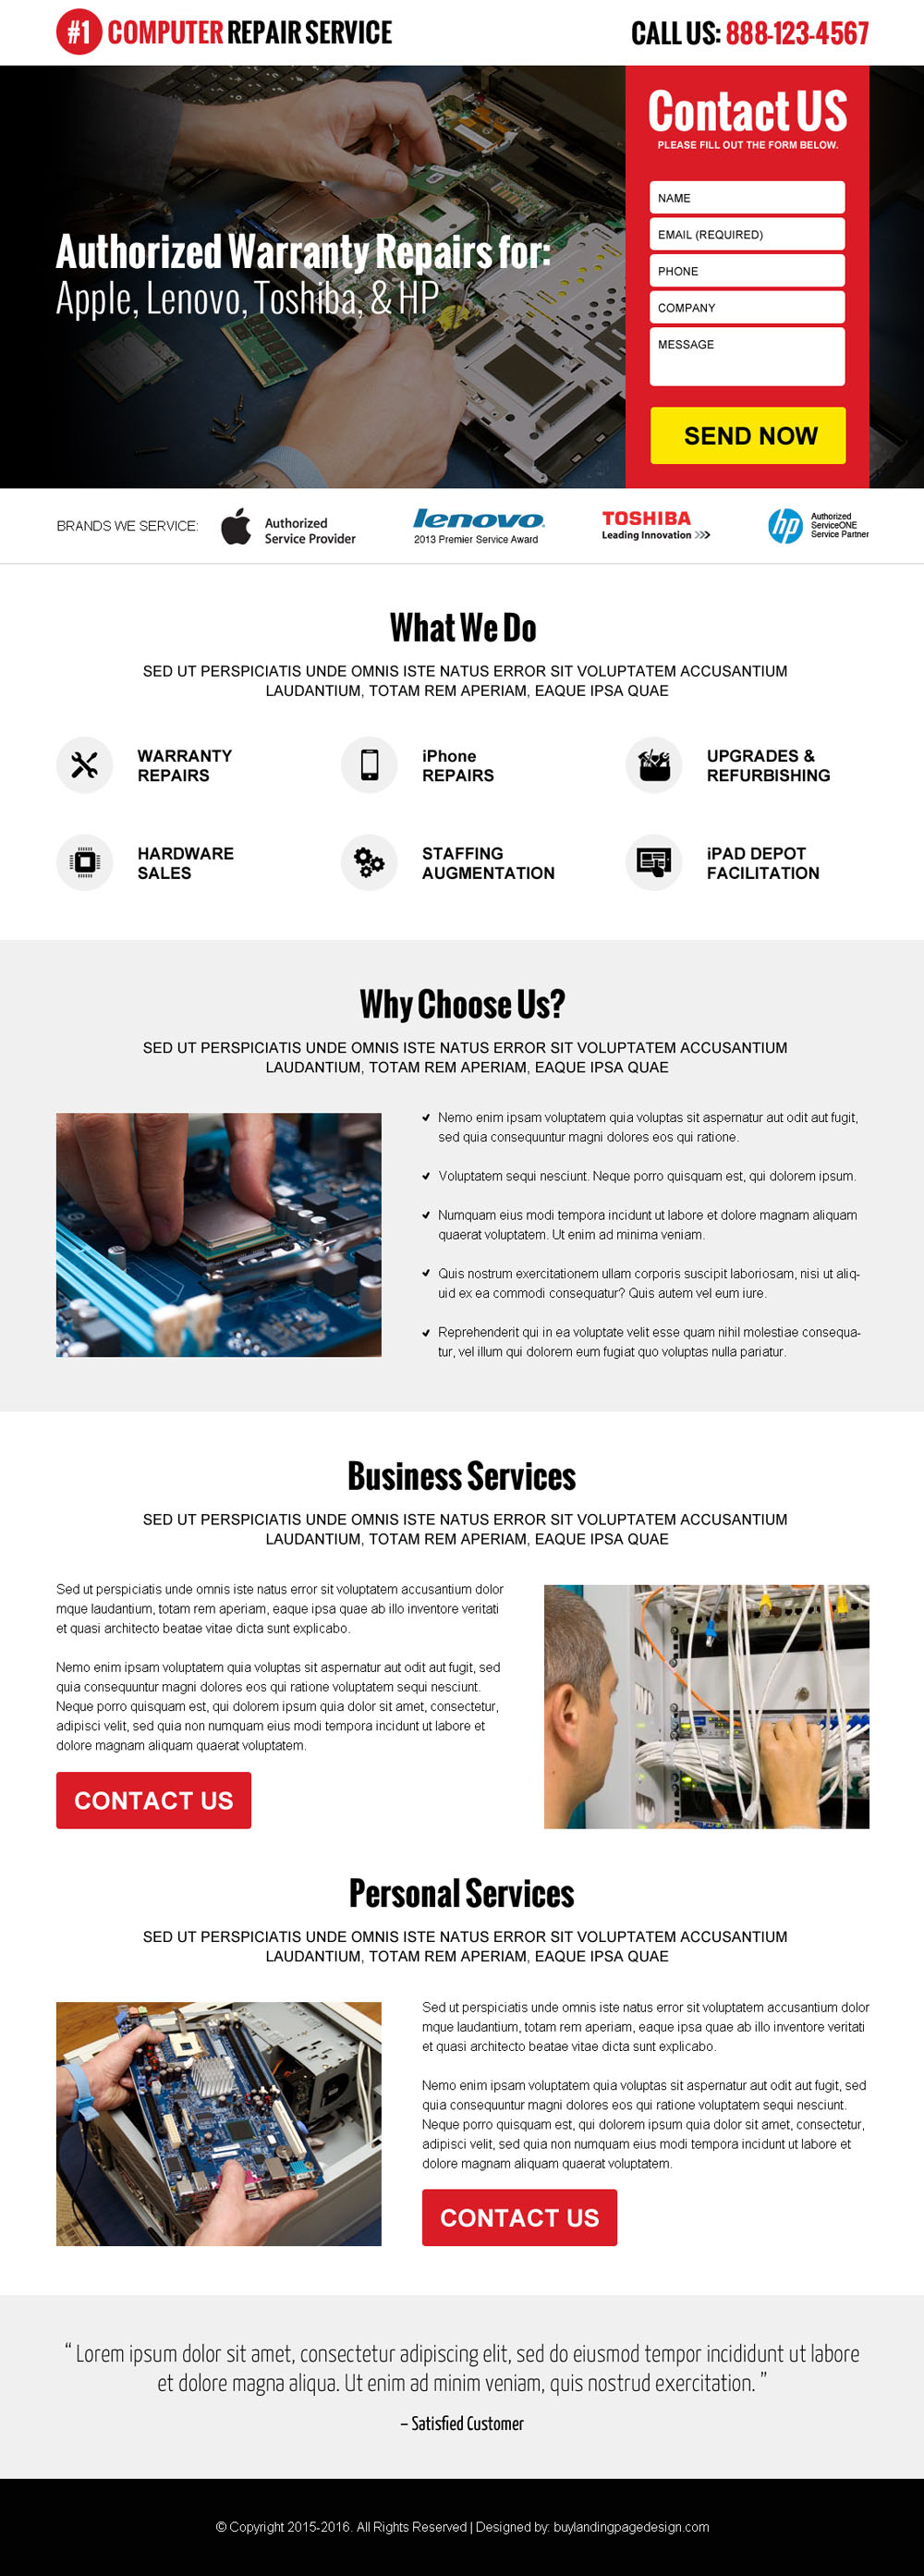 computer-repair-service-lead-capture-converting-landing-page-design-001